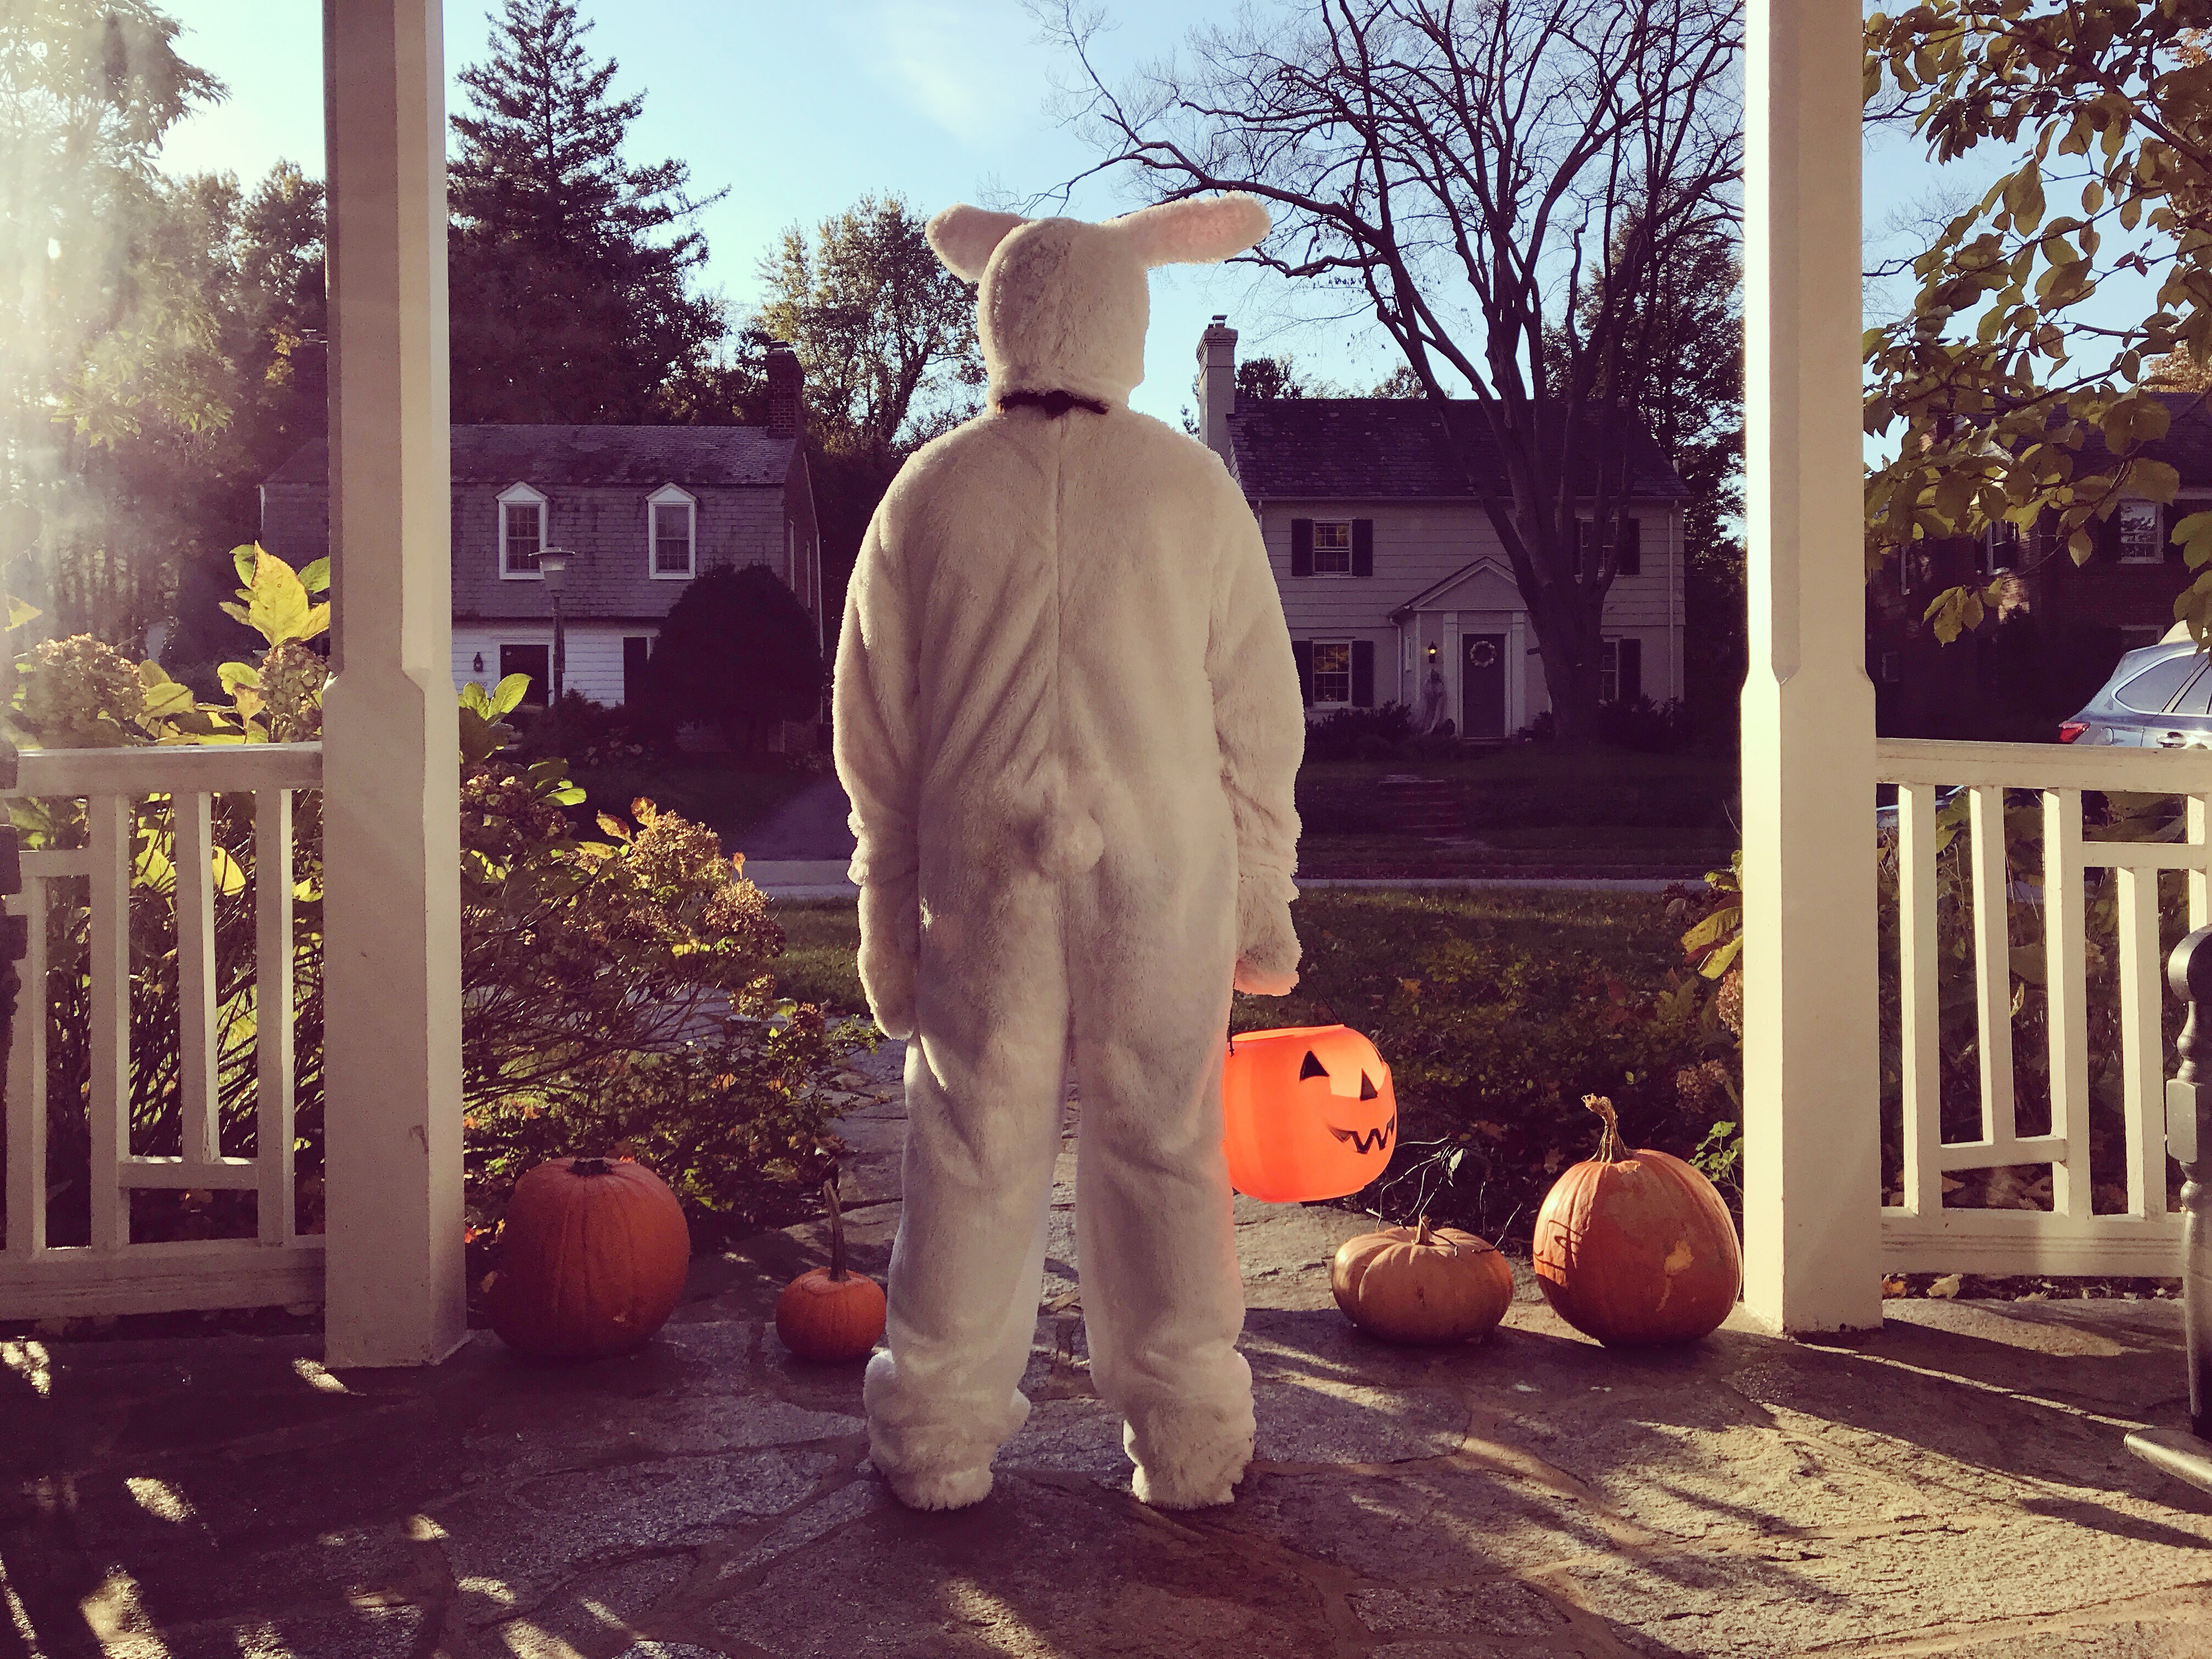 A person in a rabbit costume standing on a suburban porch with pumpkins.